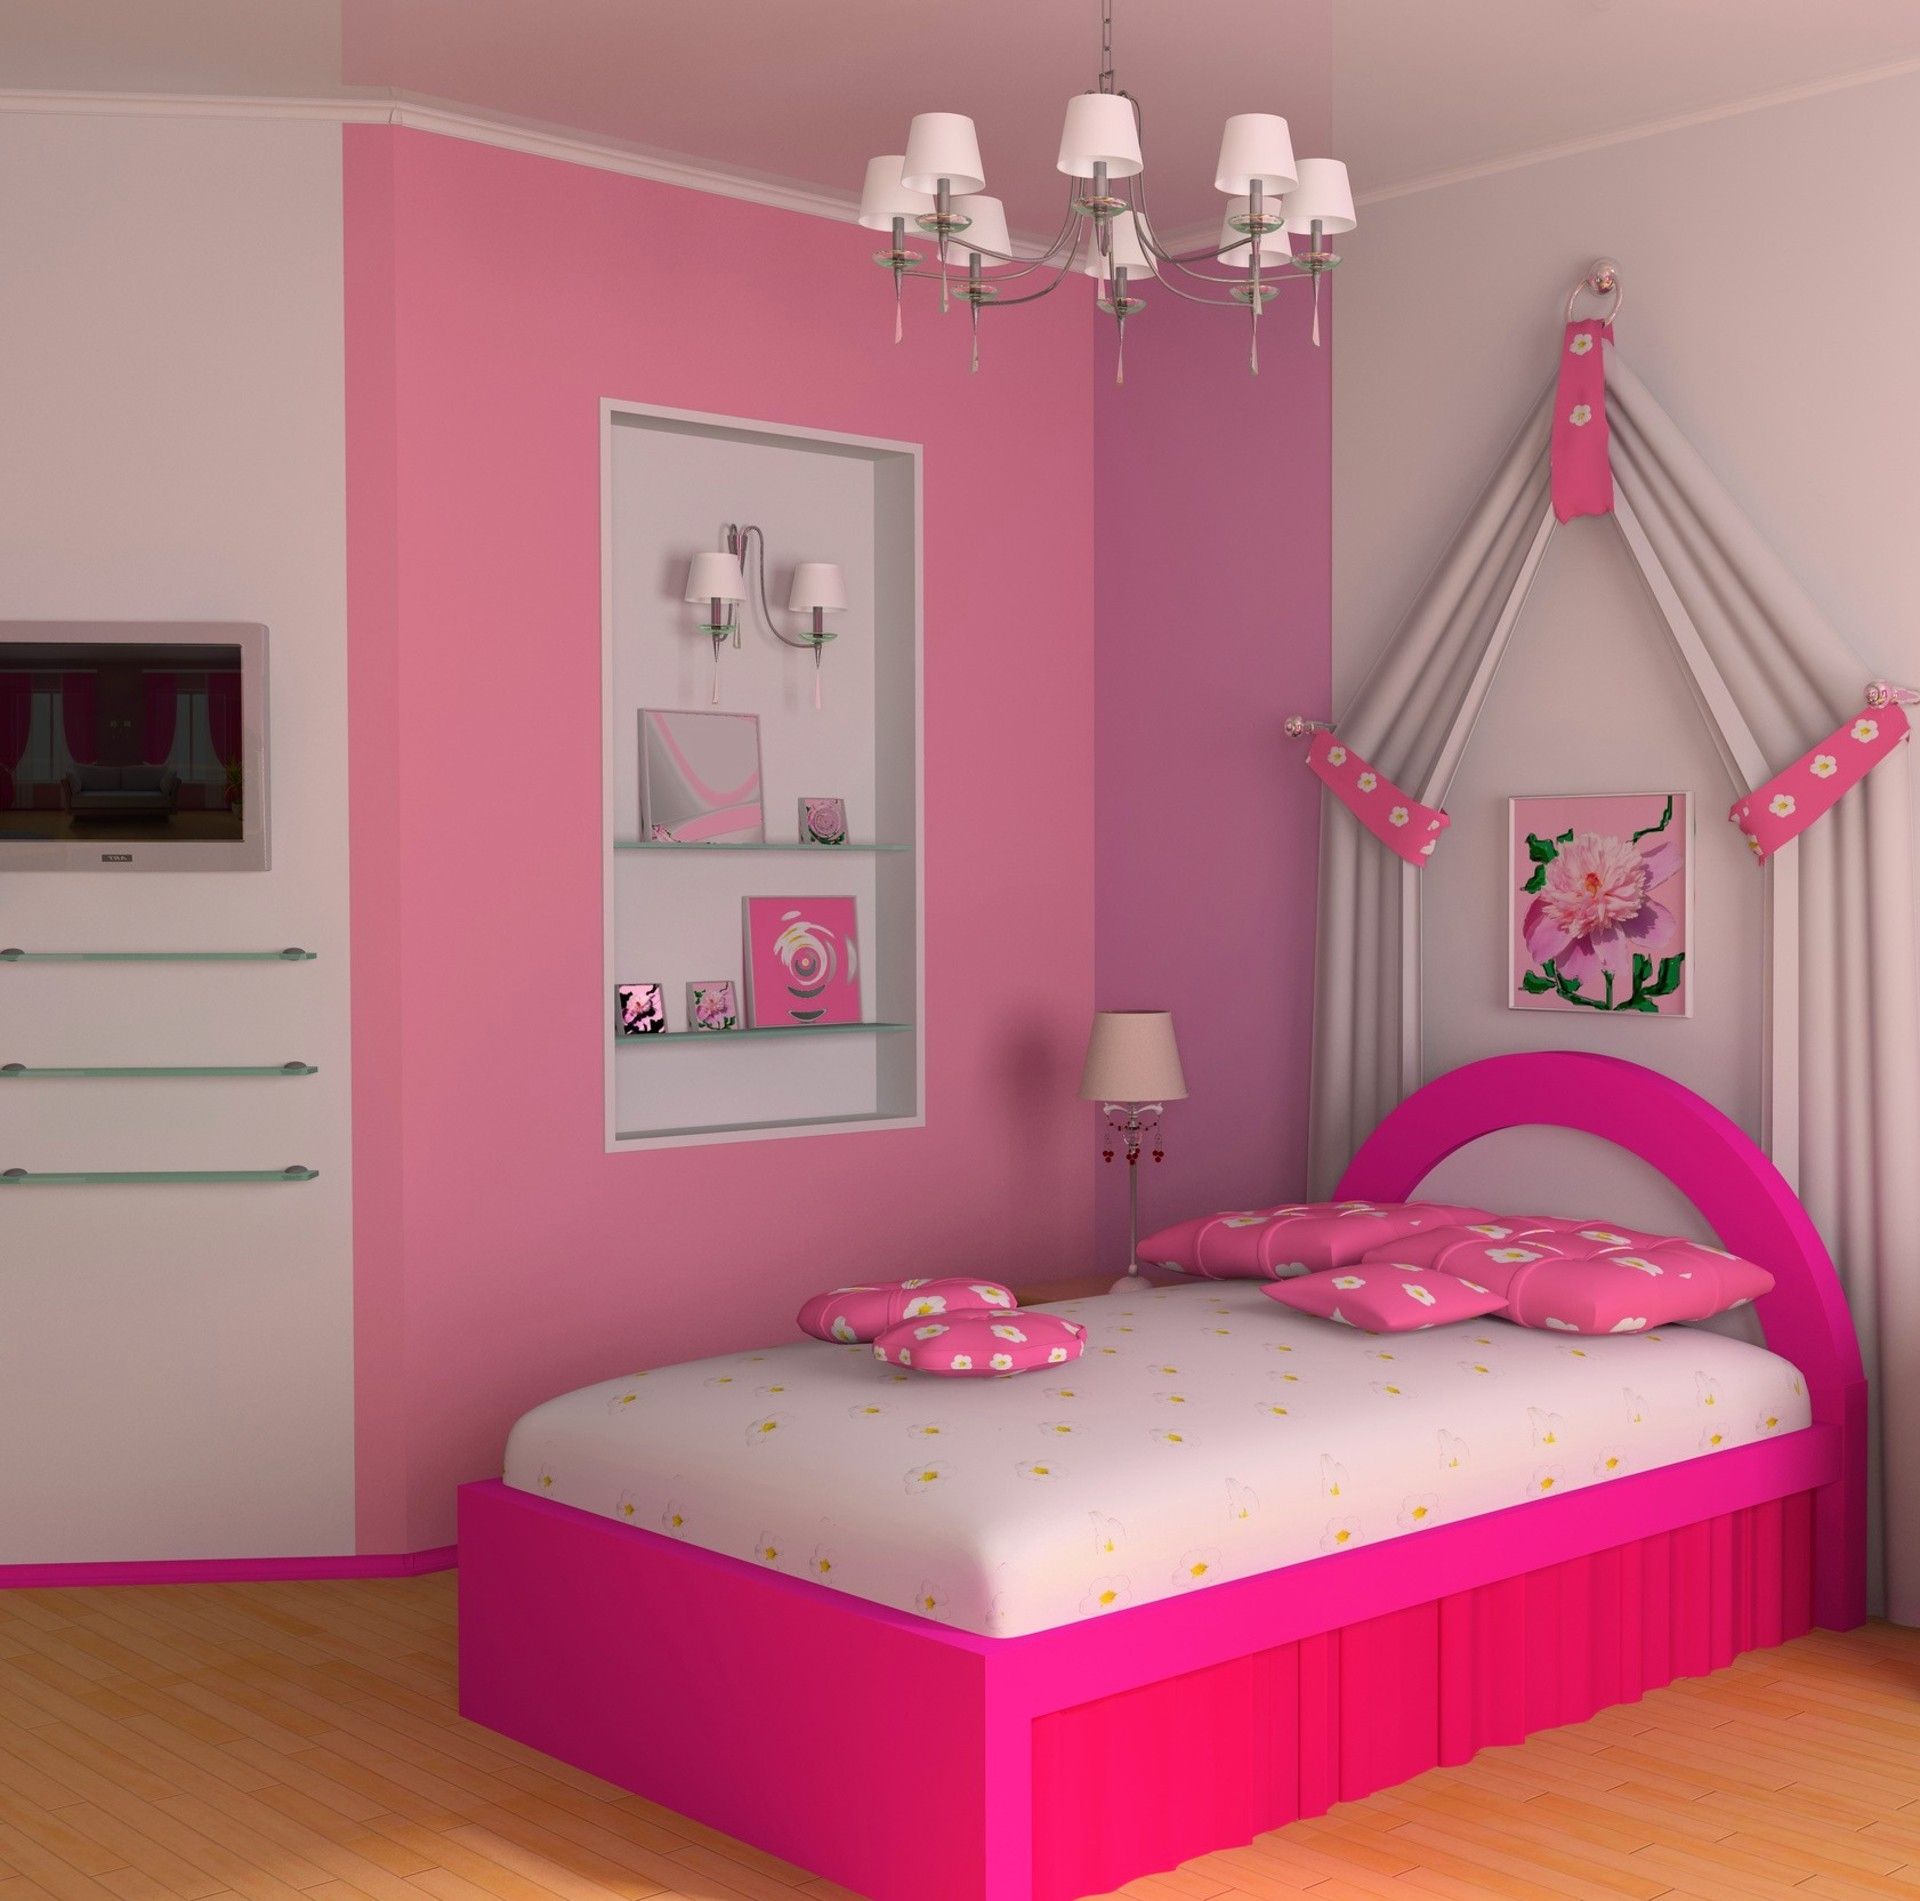 Superior Simple Pikn Barbie Themed Teen Girl Bedroom Design Decorating Ideas  Throughout Bedroom For Teen Girl Barbies